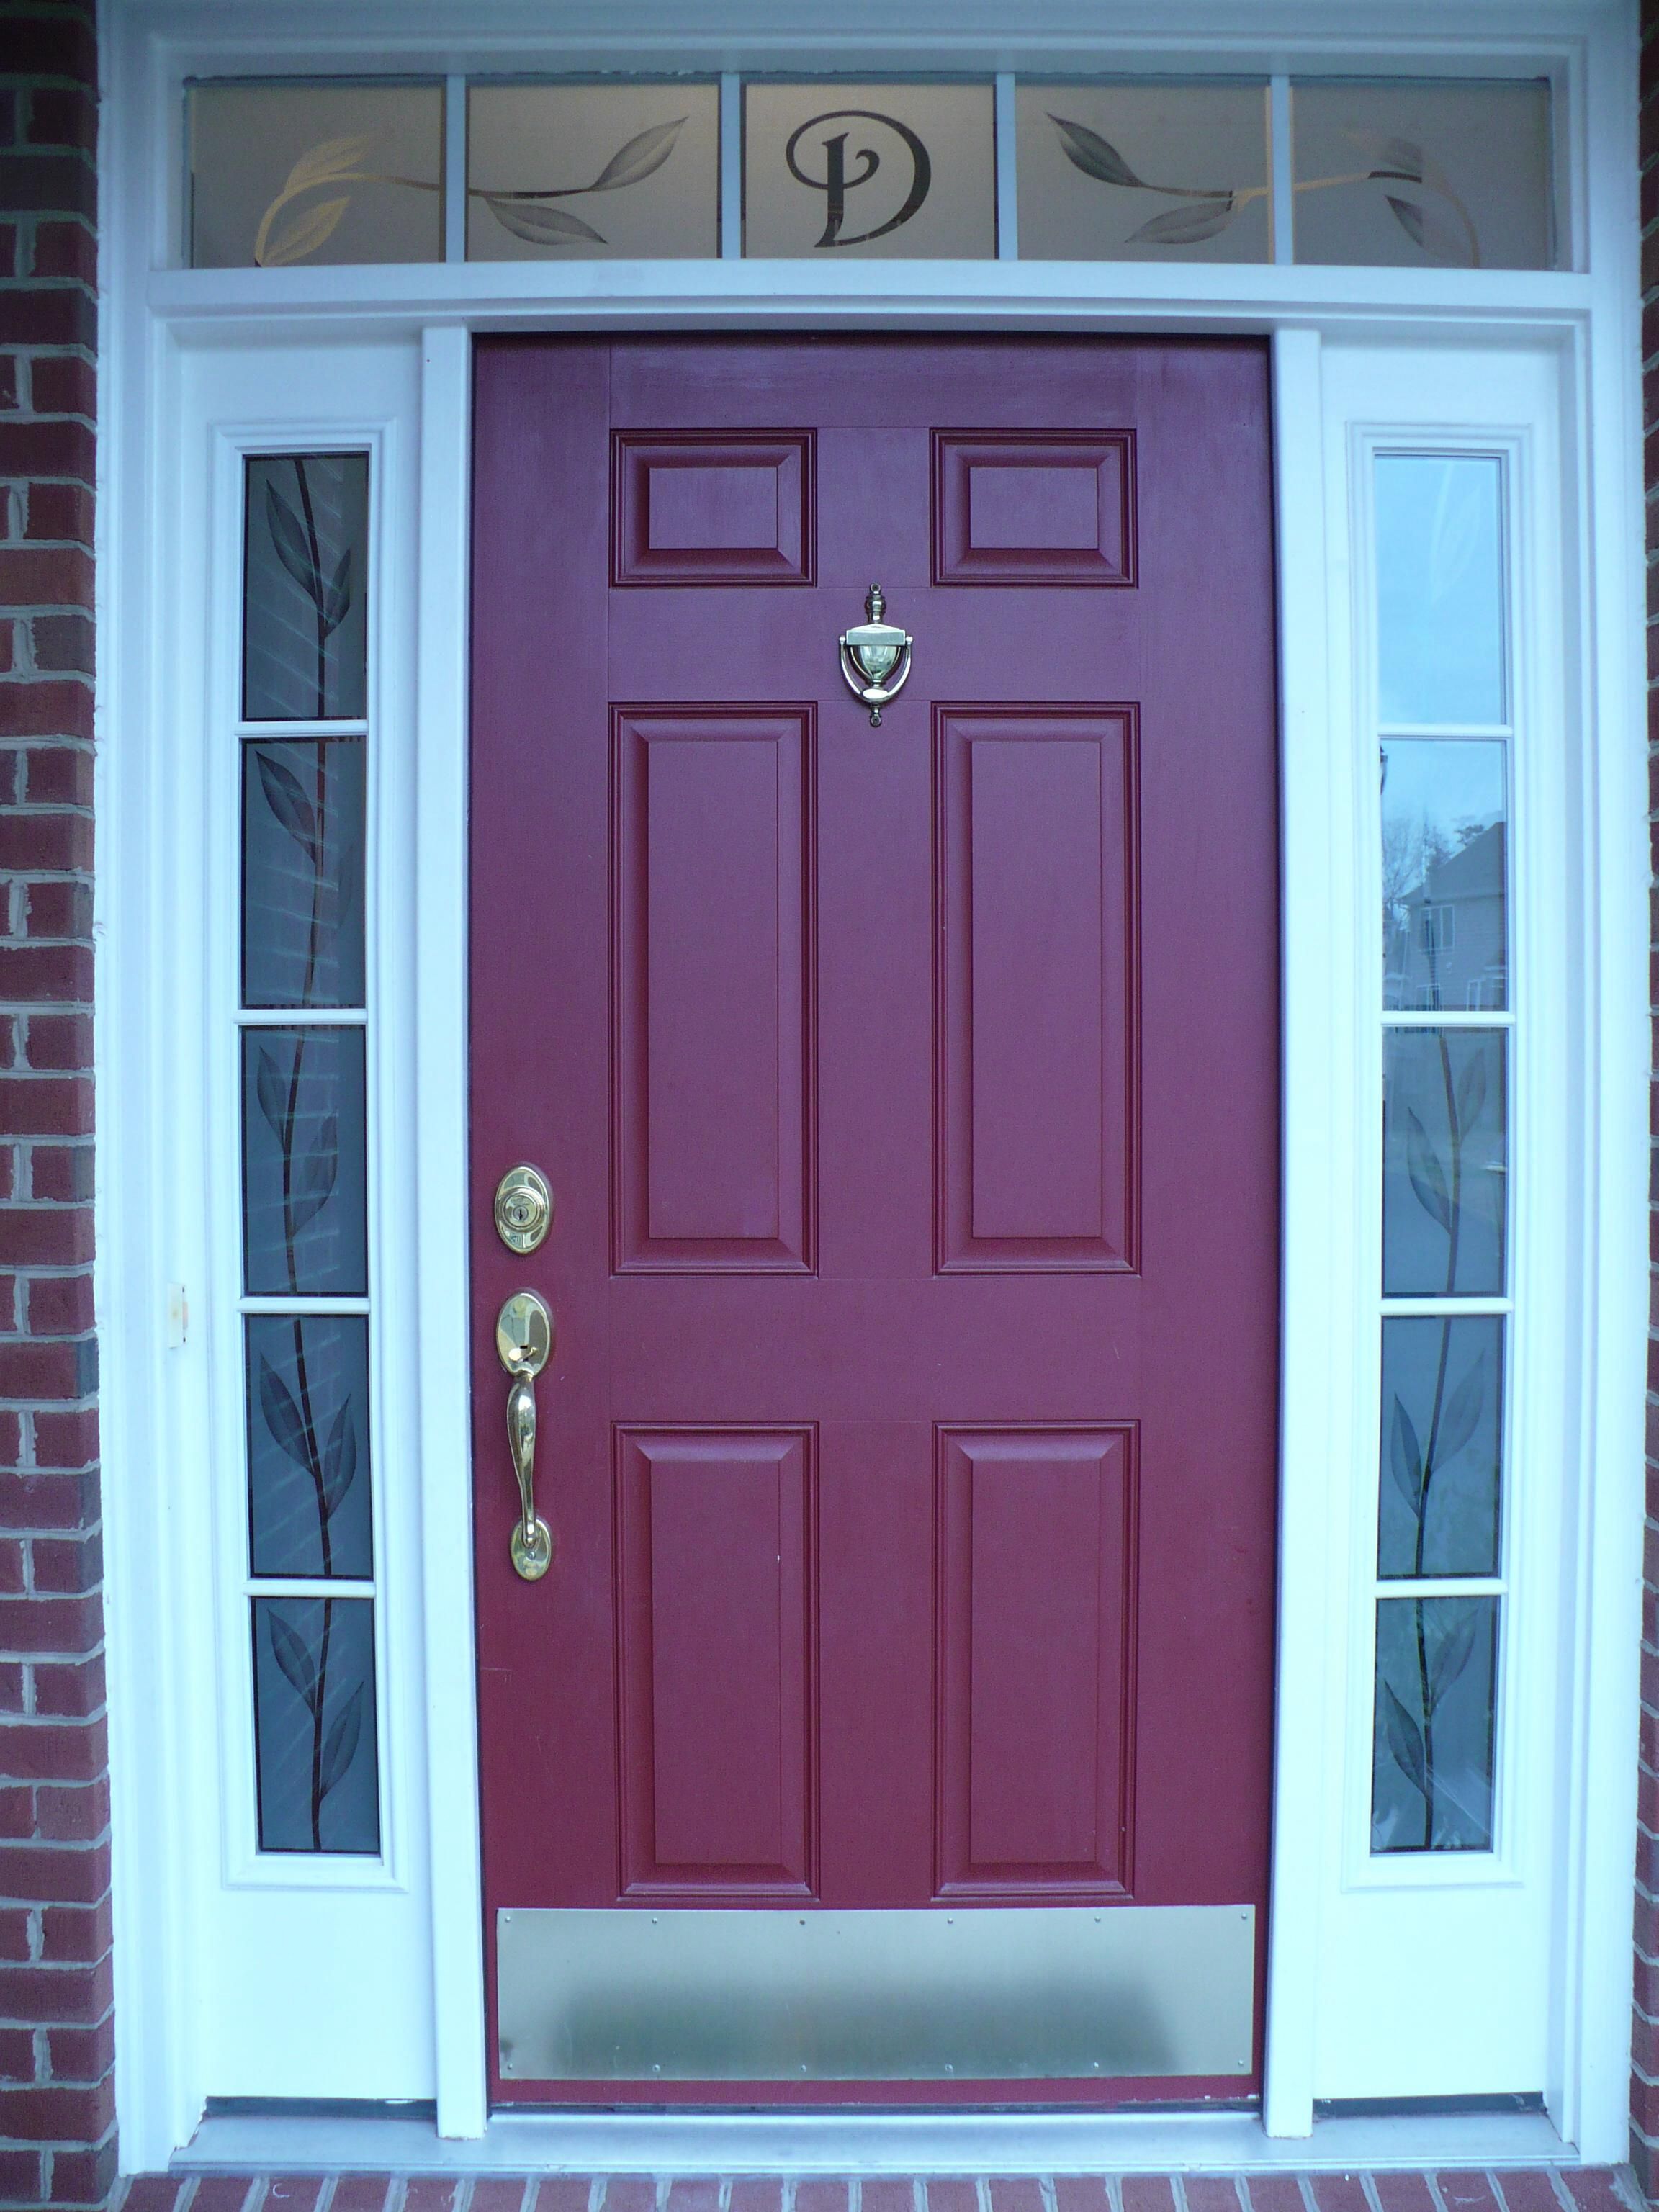 Entrance Door With Window Of Home Entrance Door Entrance Doors With Side Panels